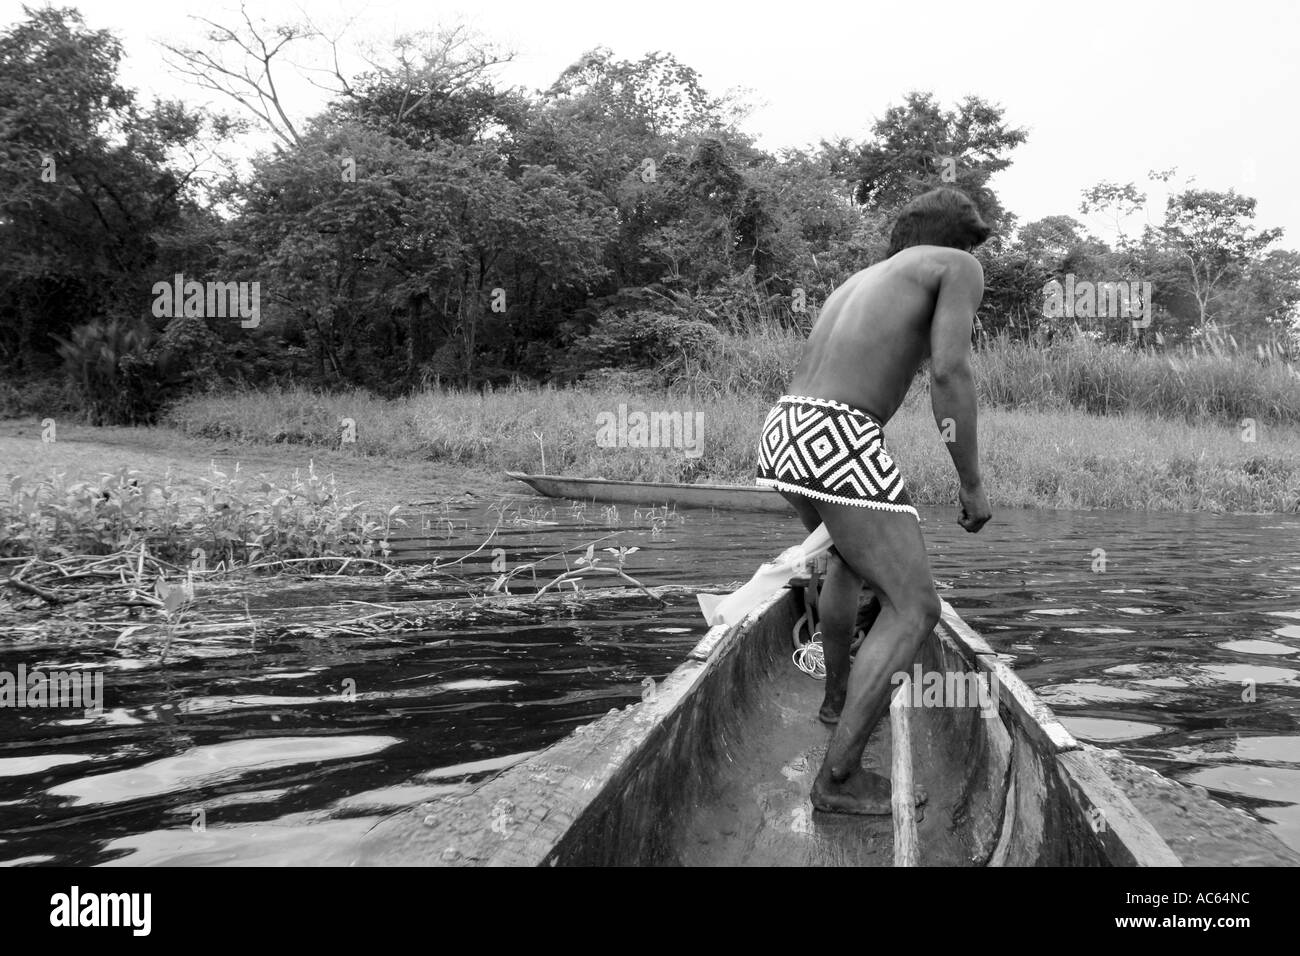 An Embera indian sailing through the Chagres river in the Panamenian jungle Chagres National Park in his canoe - Stock Image